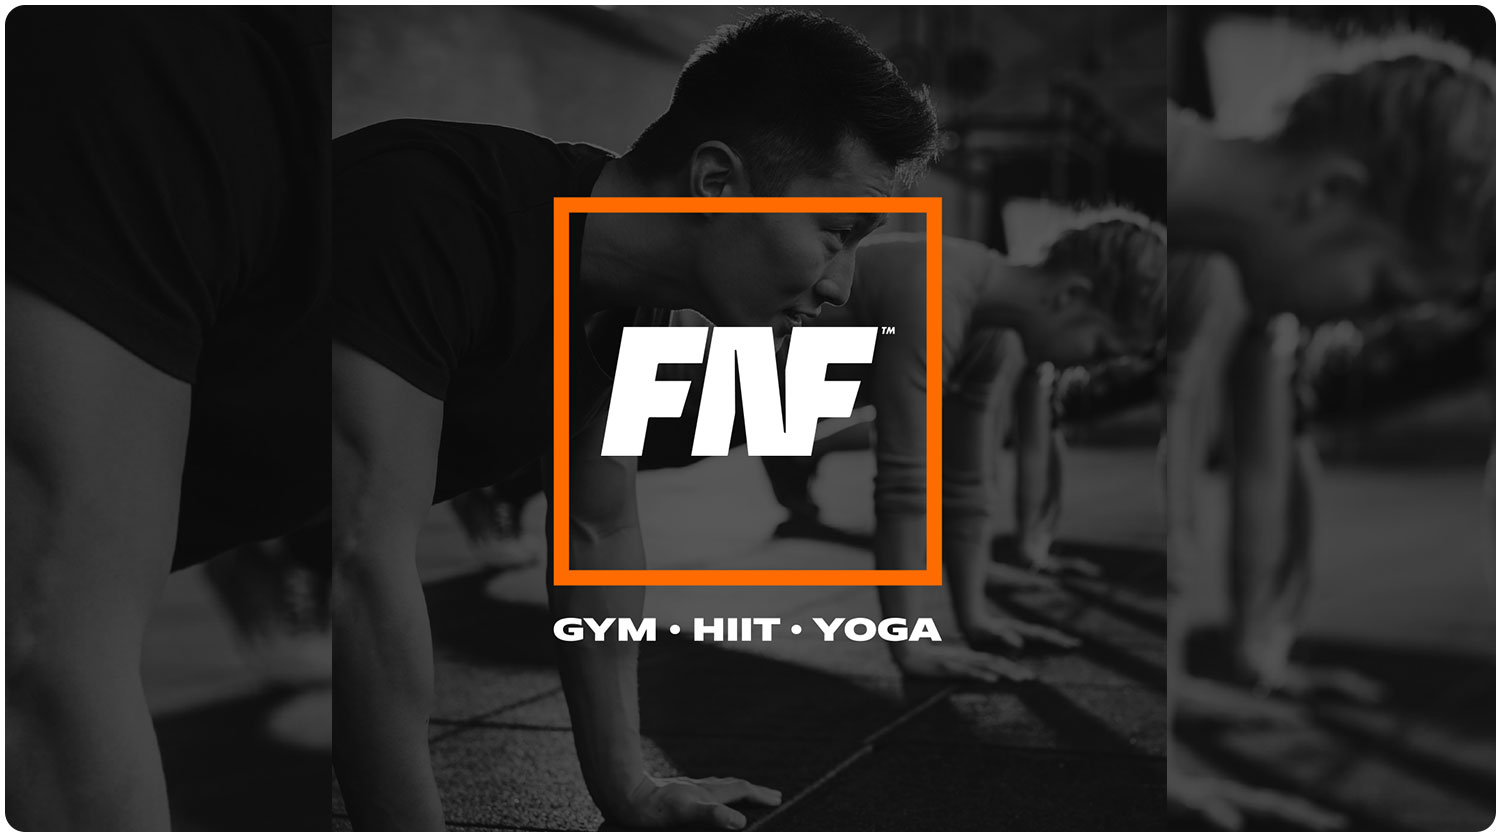 85% off – Experience Your Fitness, Your Way. It's only $14 for for 14 days unlimited Gym, HIIT and more at Fit n Fast Southland Cheltenham. Whether you are a new, a HIIT junkie or a lifter, experience your workout your way. Normally $94.90 Save $80.90